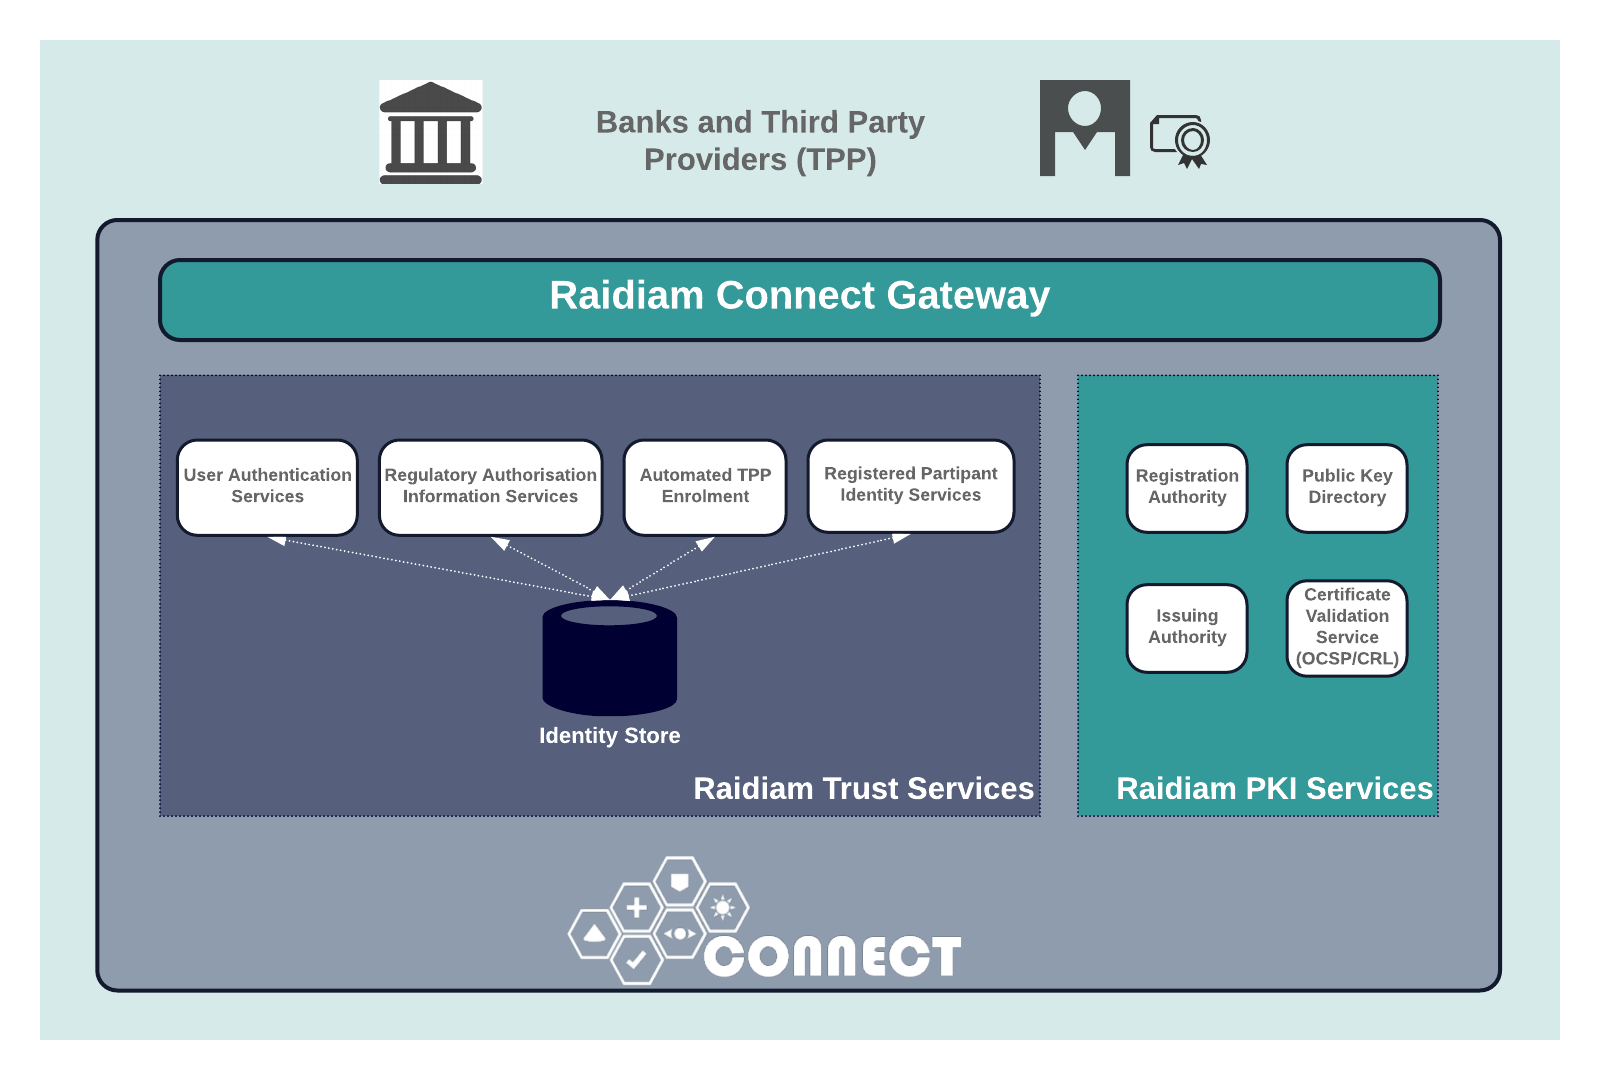 Raidiam Connect PKI Services is part of a suite of technology enablers available to answer the needs of your connected economy journey